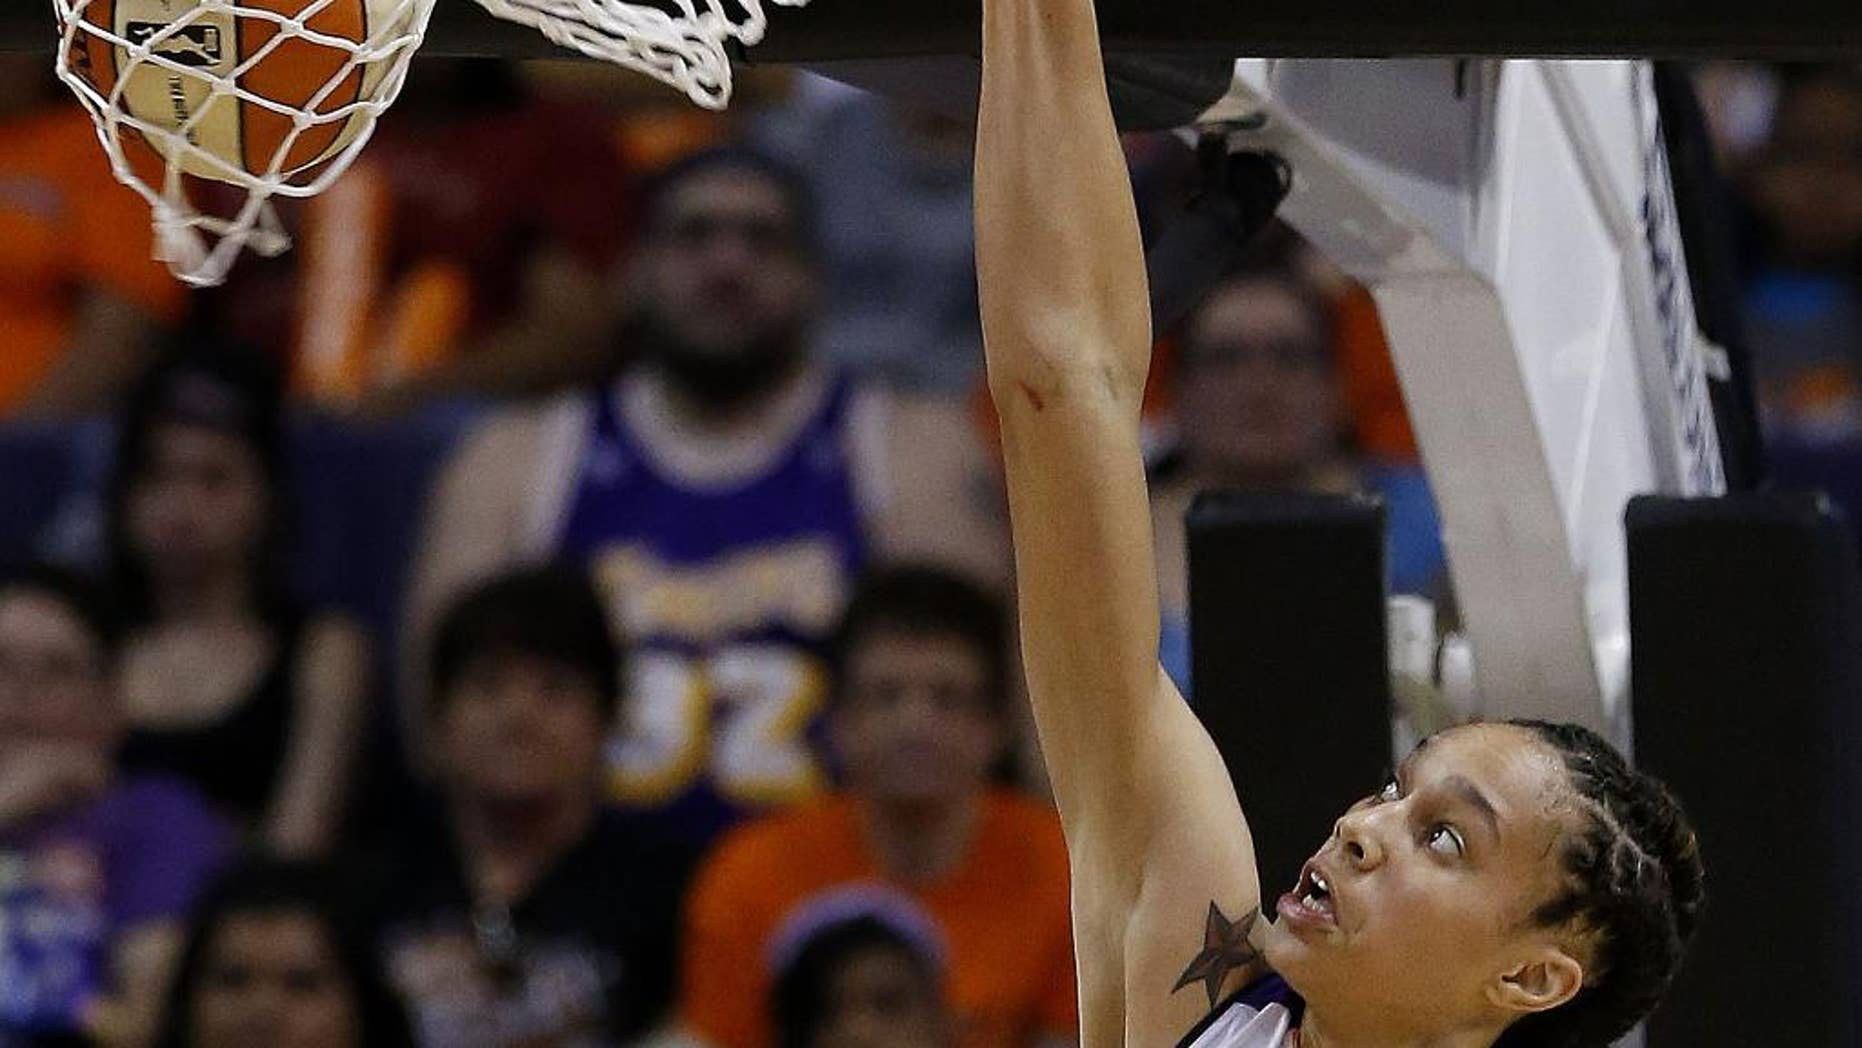 FILE - In this May 27, 2013, file photo, Phoenix Mercury's Brittney Griner dunks against the Chicago Sky in the second half during a WNBA basketball game in Phoenix. Griner brings her slam-dunking skills to Madison Square Garden for the first time, hoping to take her team a step closer to the WNBA playoffs and a possible league record 30-win season.  (AP Photo/Ross D. Franklin, File)